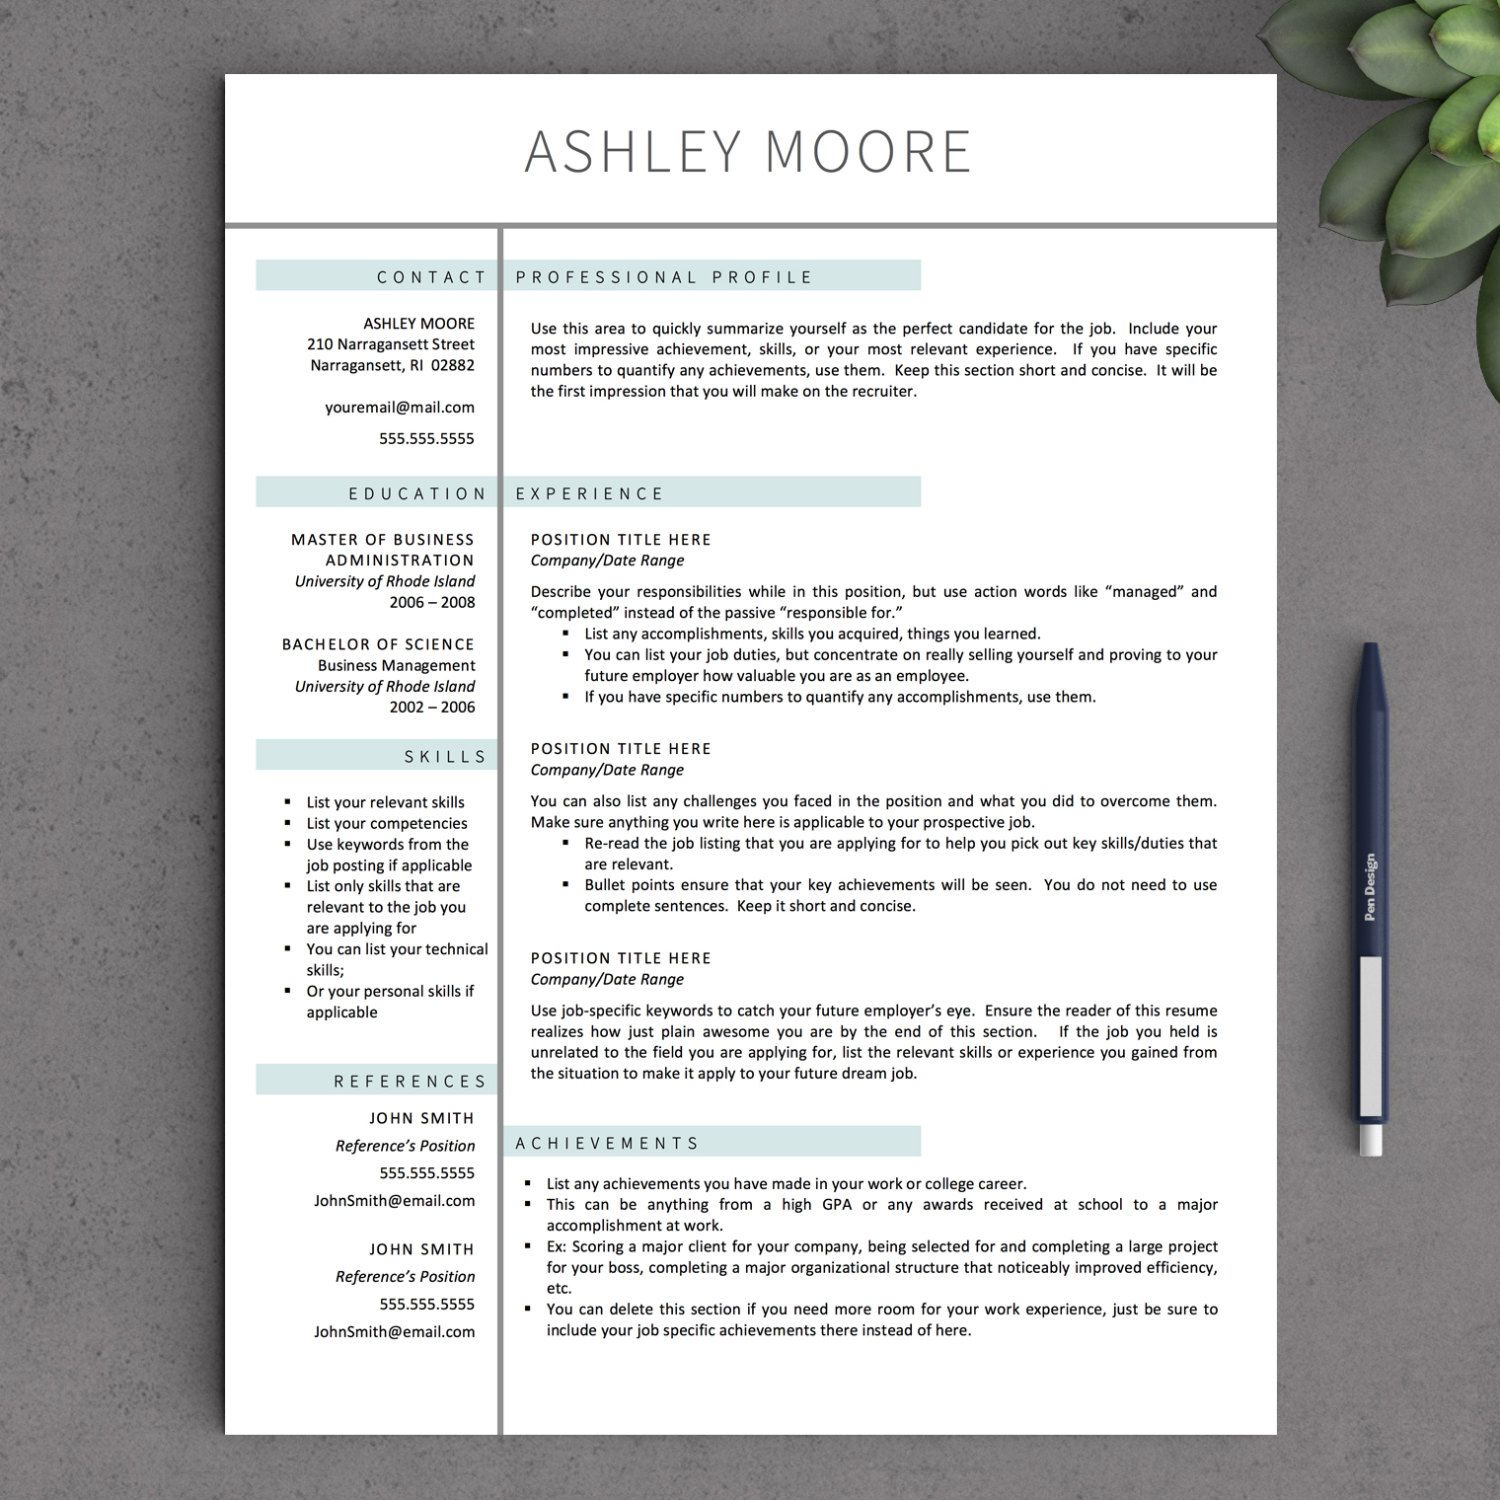 apple pages resume template download apple pages resume template download apple pages resume templates free - Resume Templates For Mac Pages